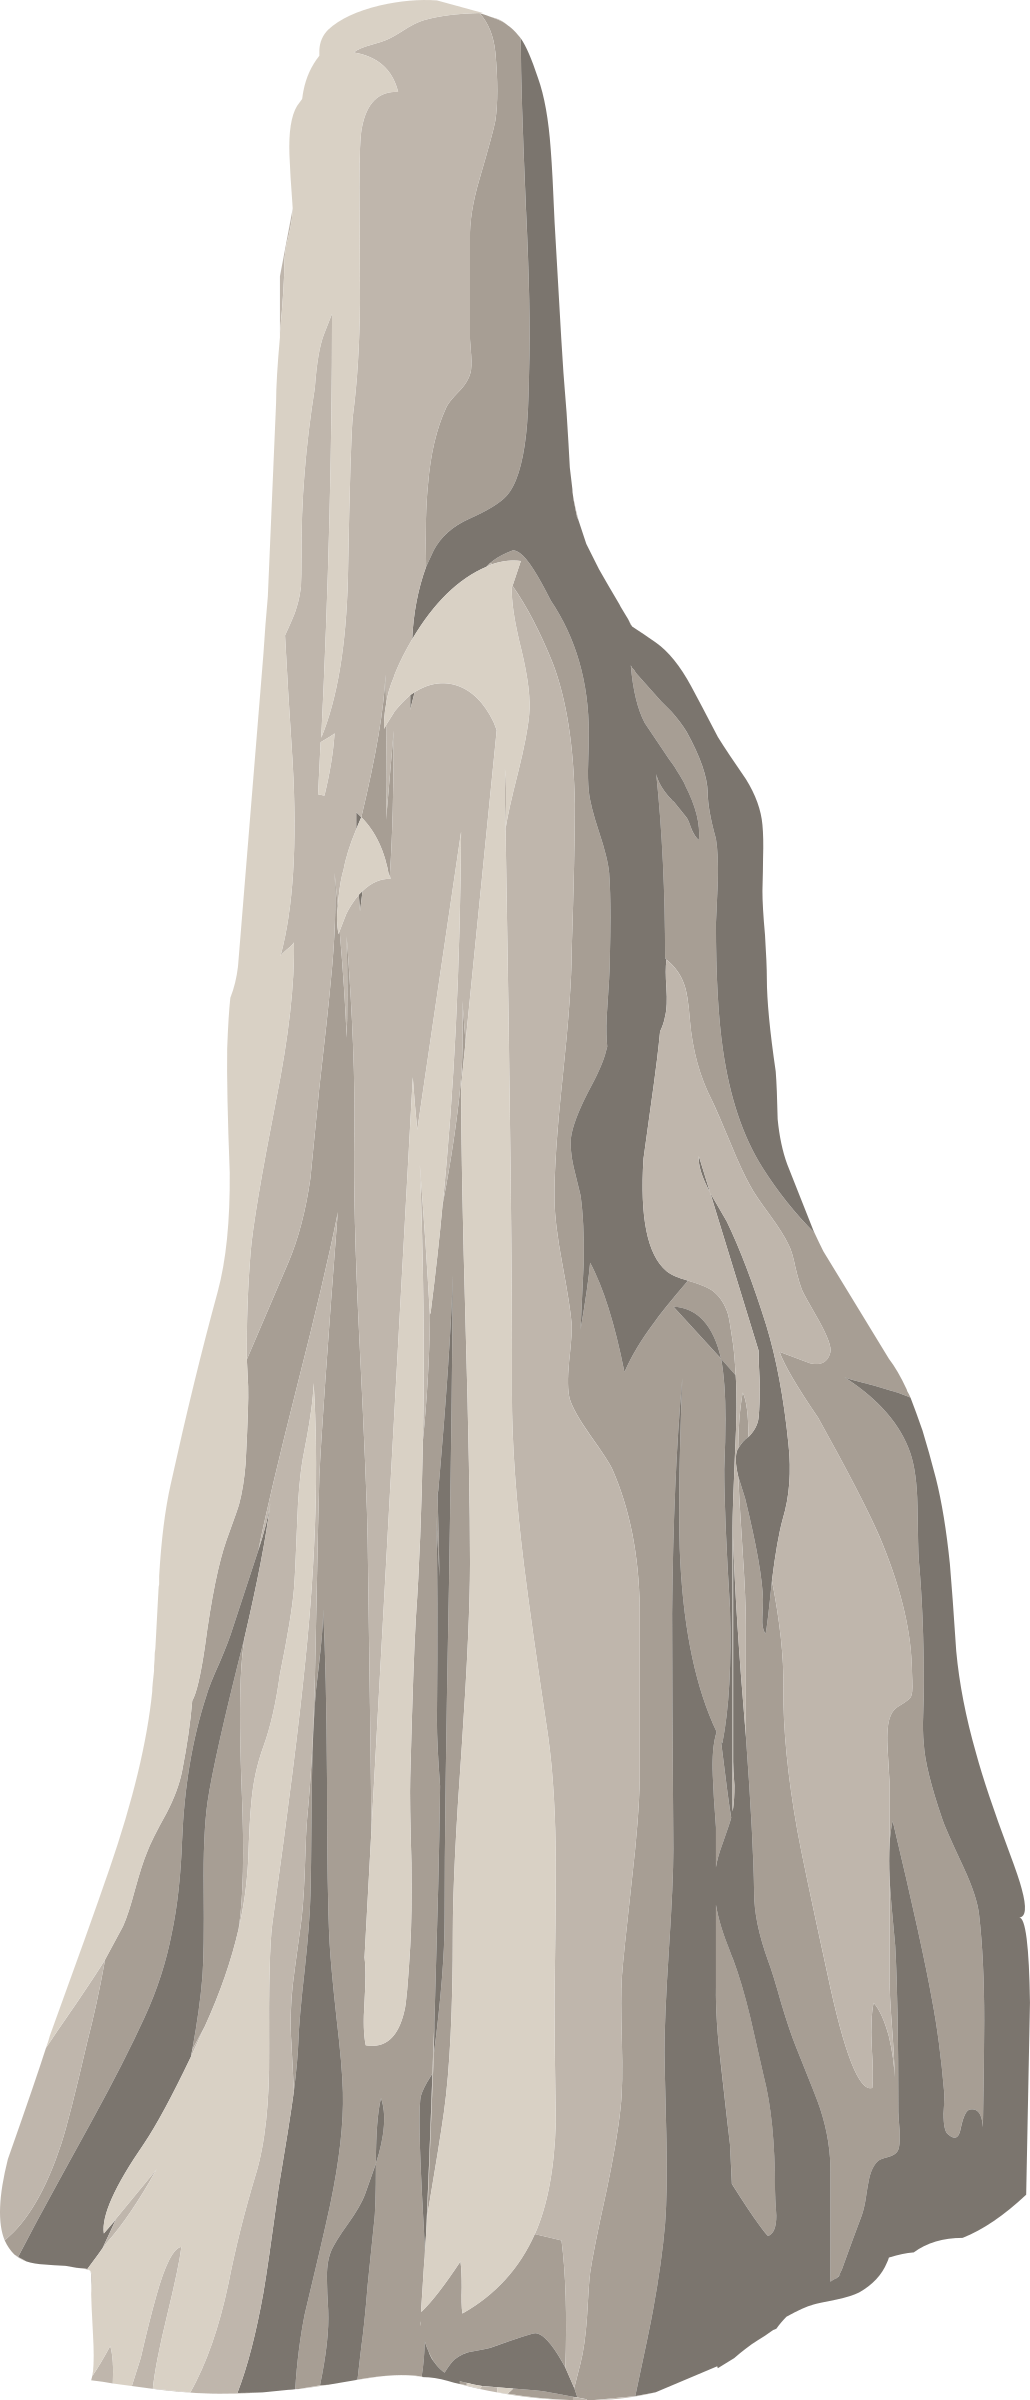 Edge drawing girl on cliff. Clipart alpine landscape face